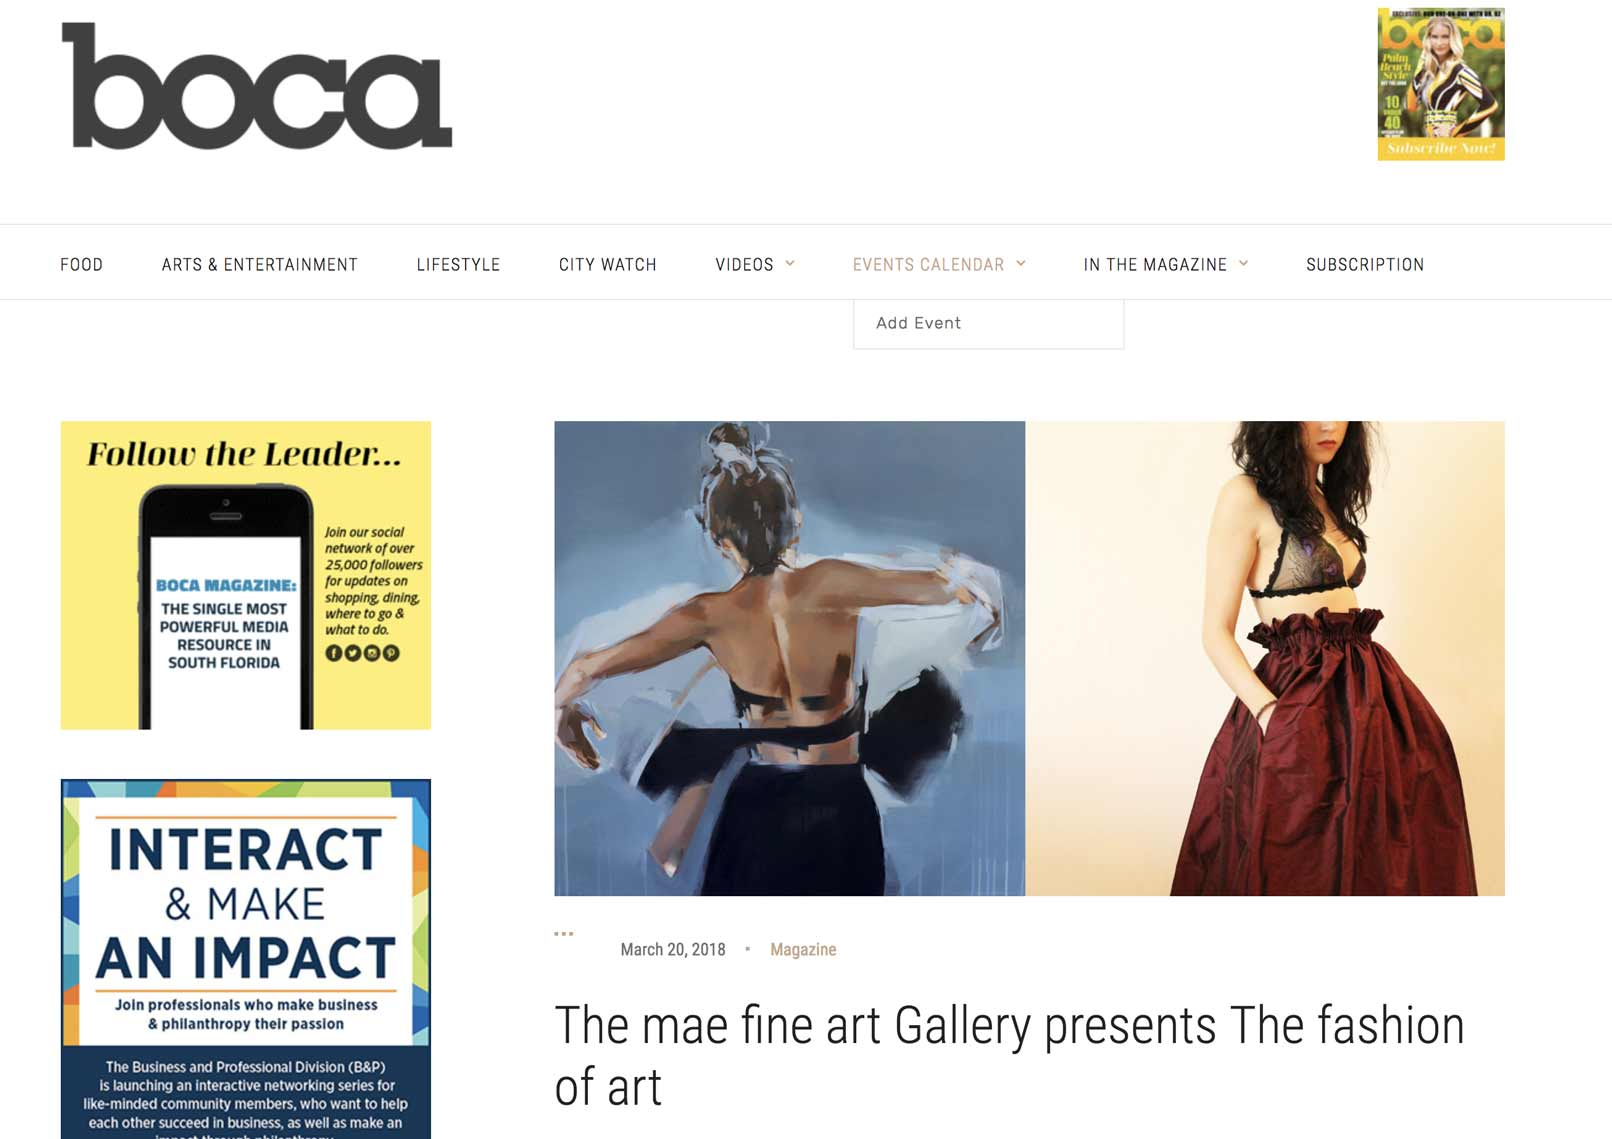 The Mae fine art Gallery presents The fashion of art | Boca Magazine